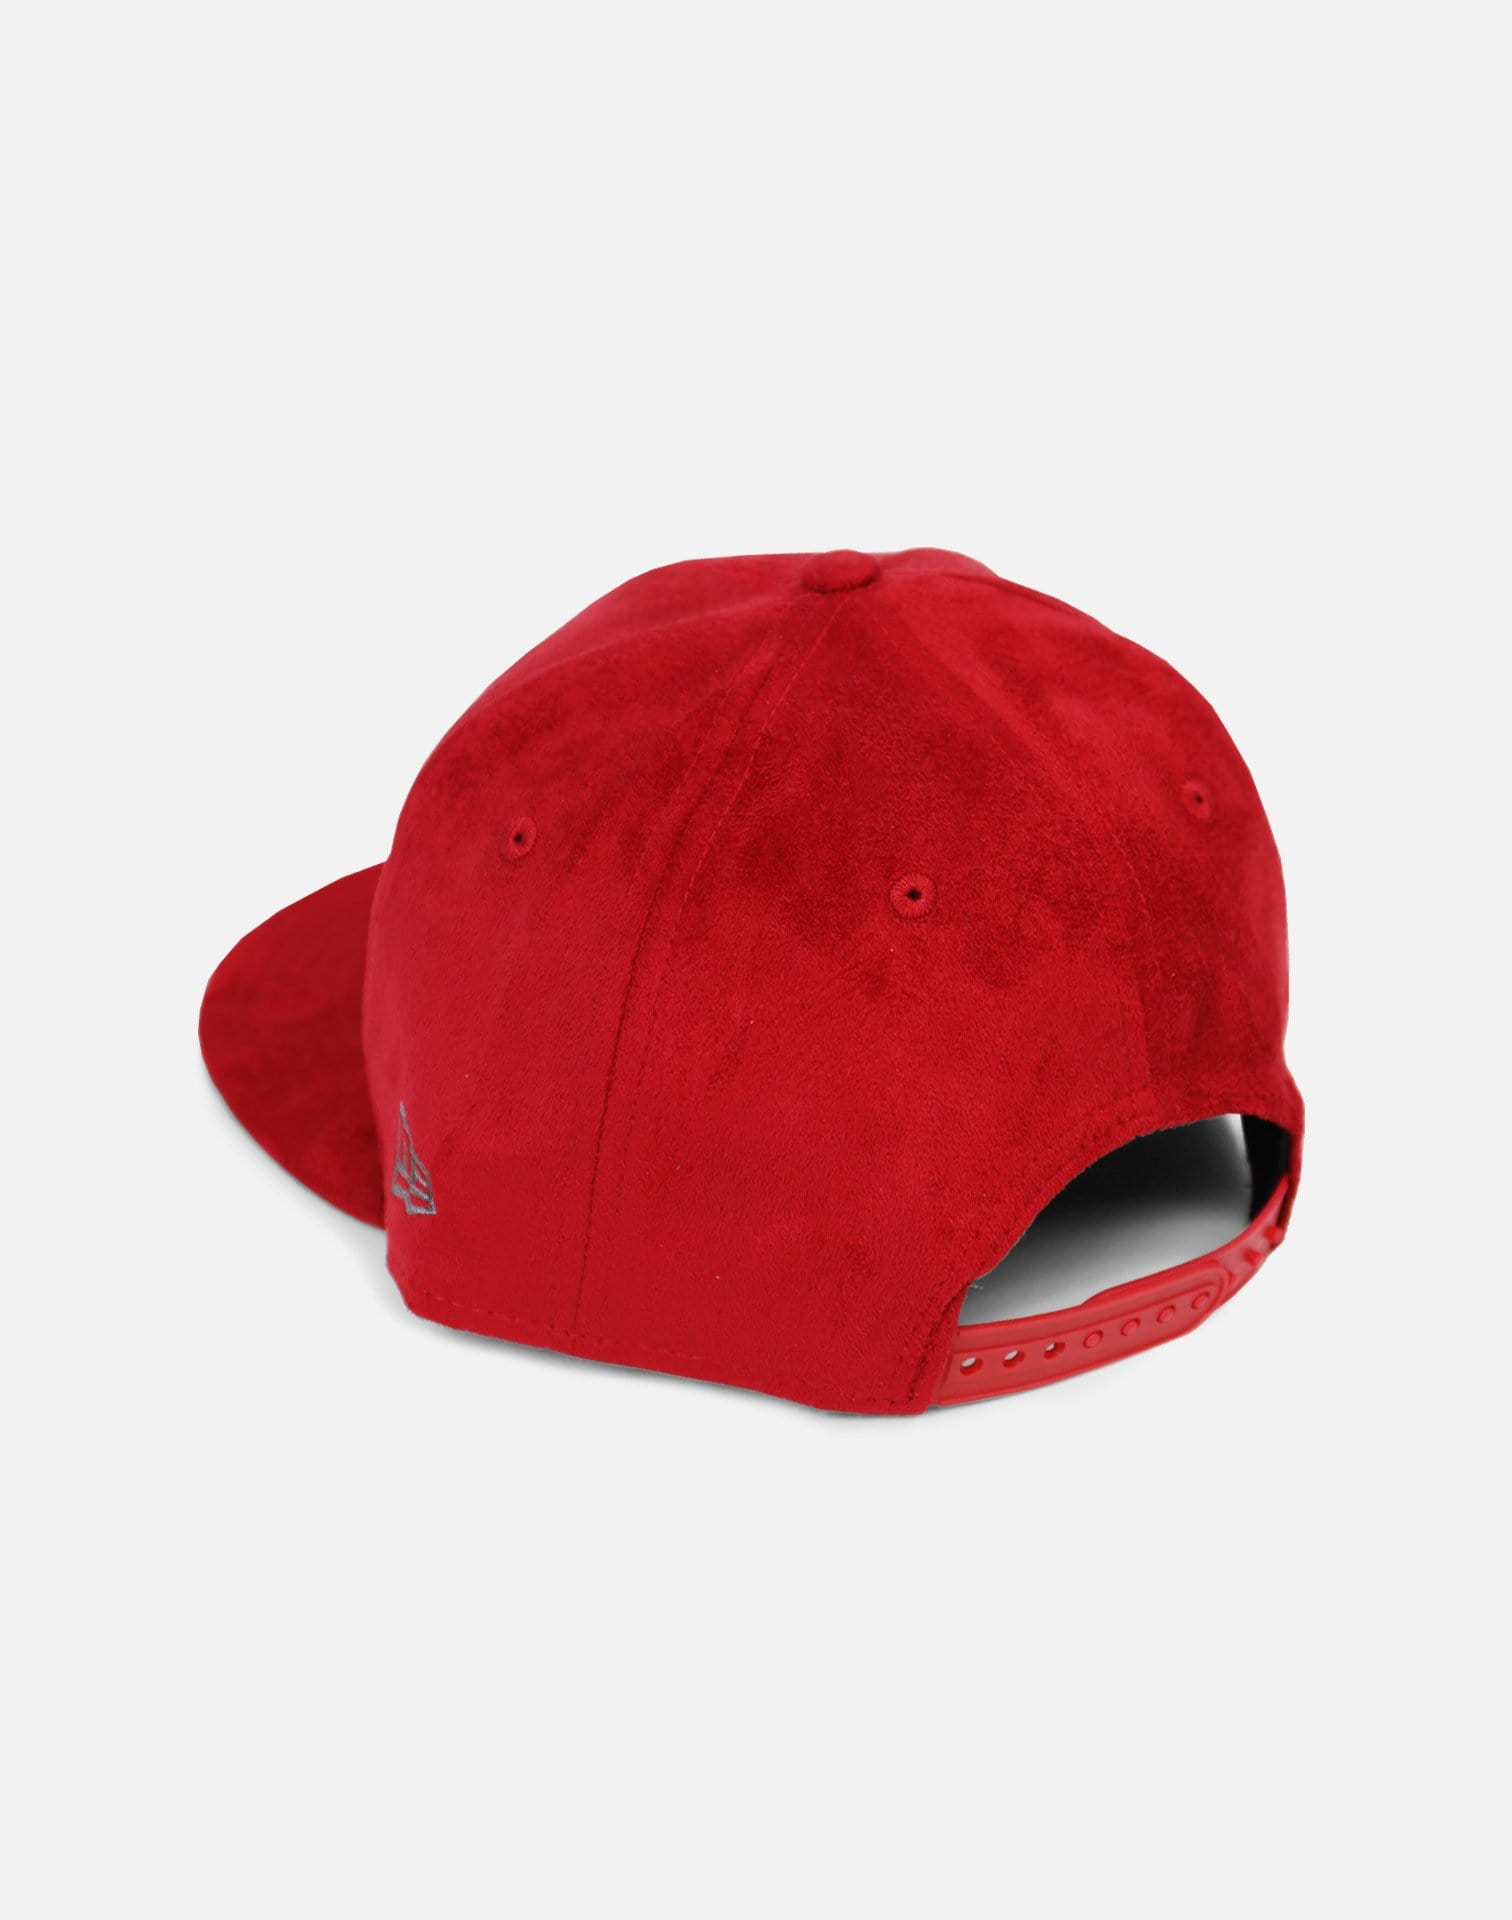 New Era Minnesota Timberwolves Suede Snapback Hat (Red)